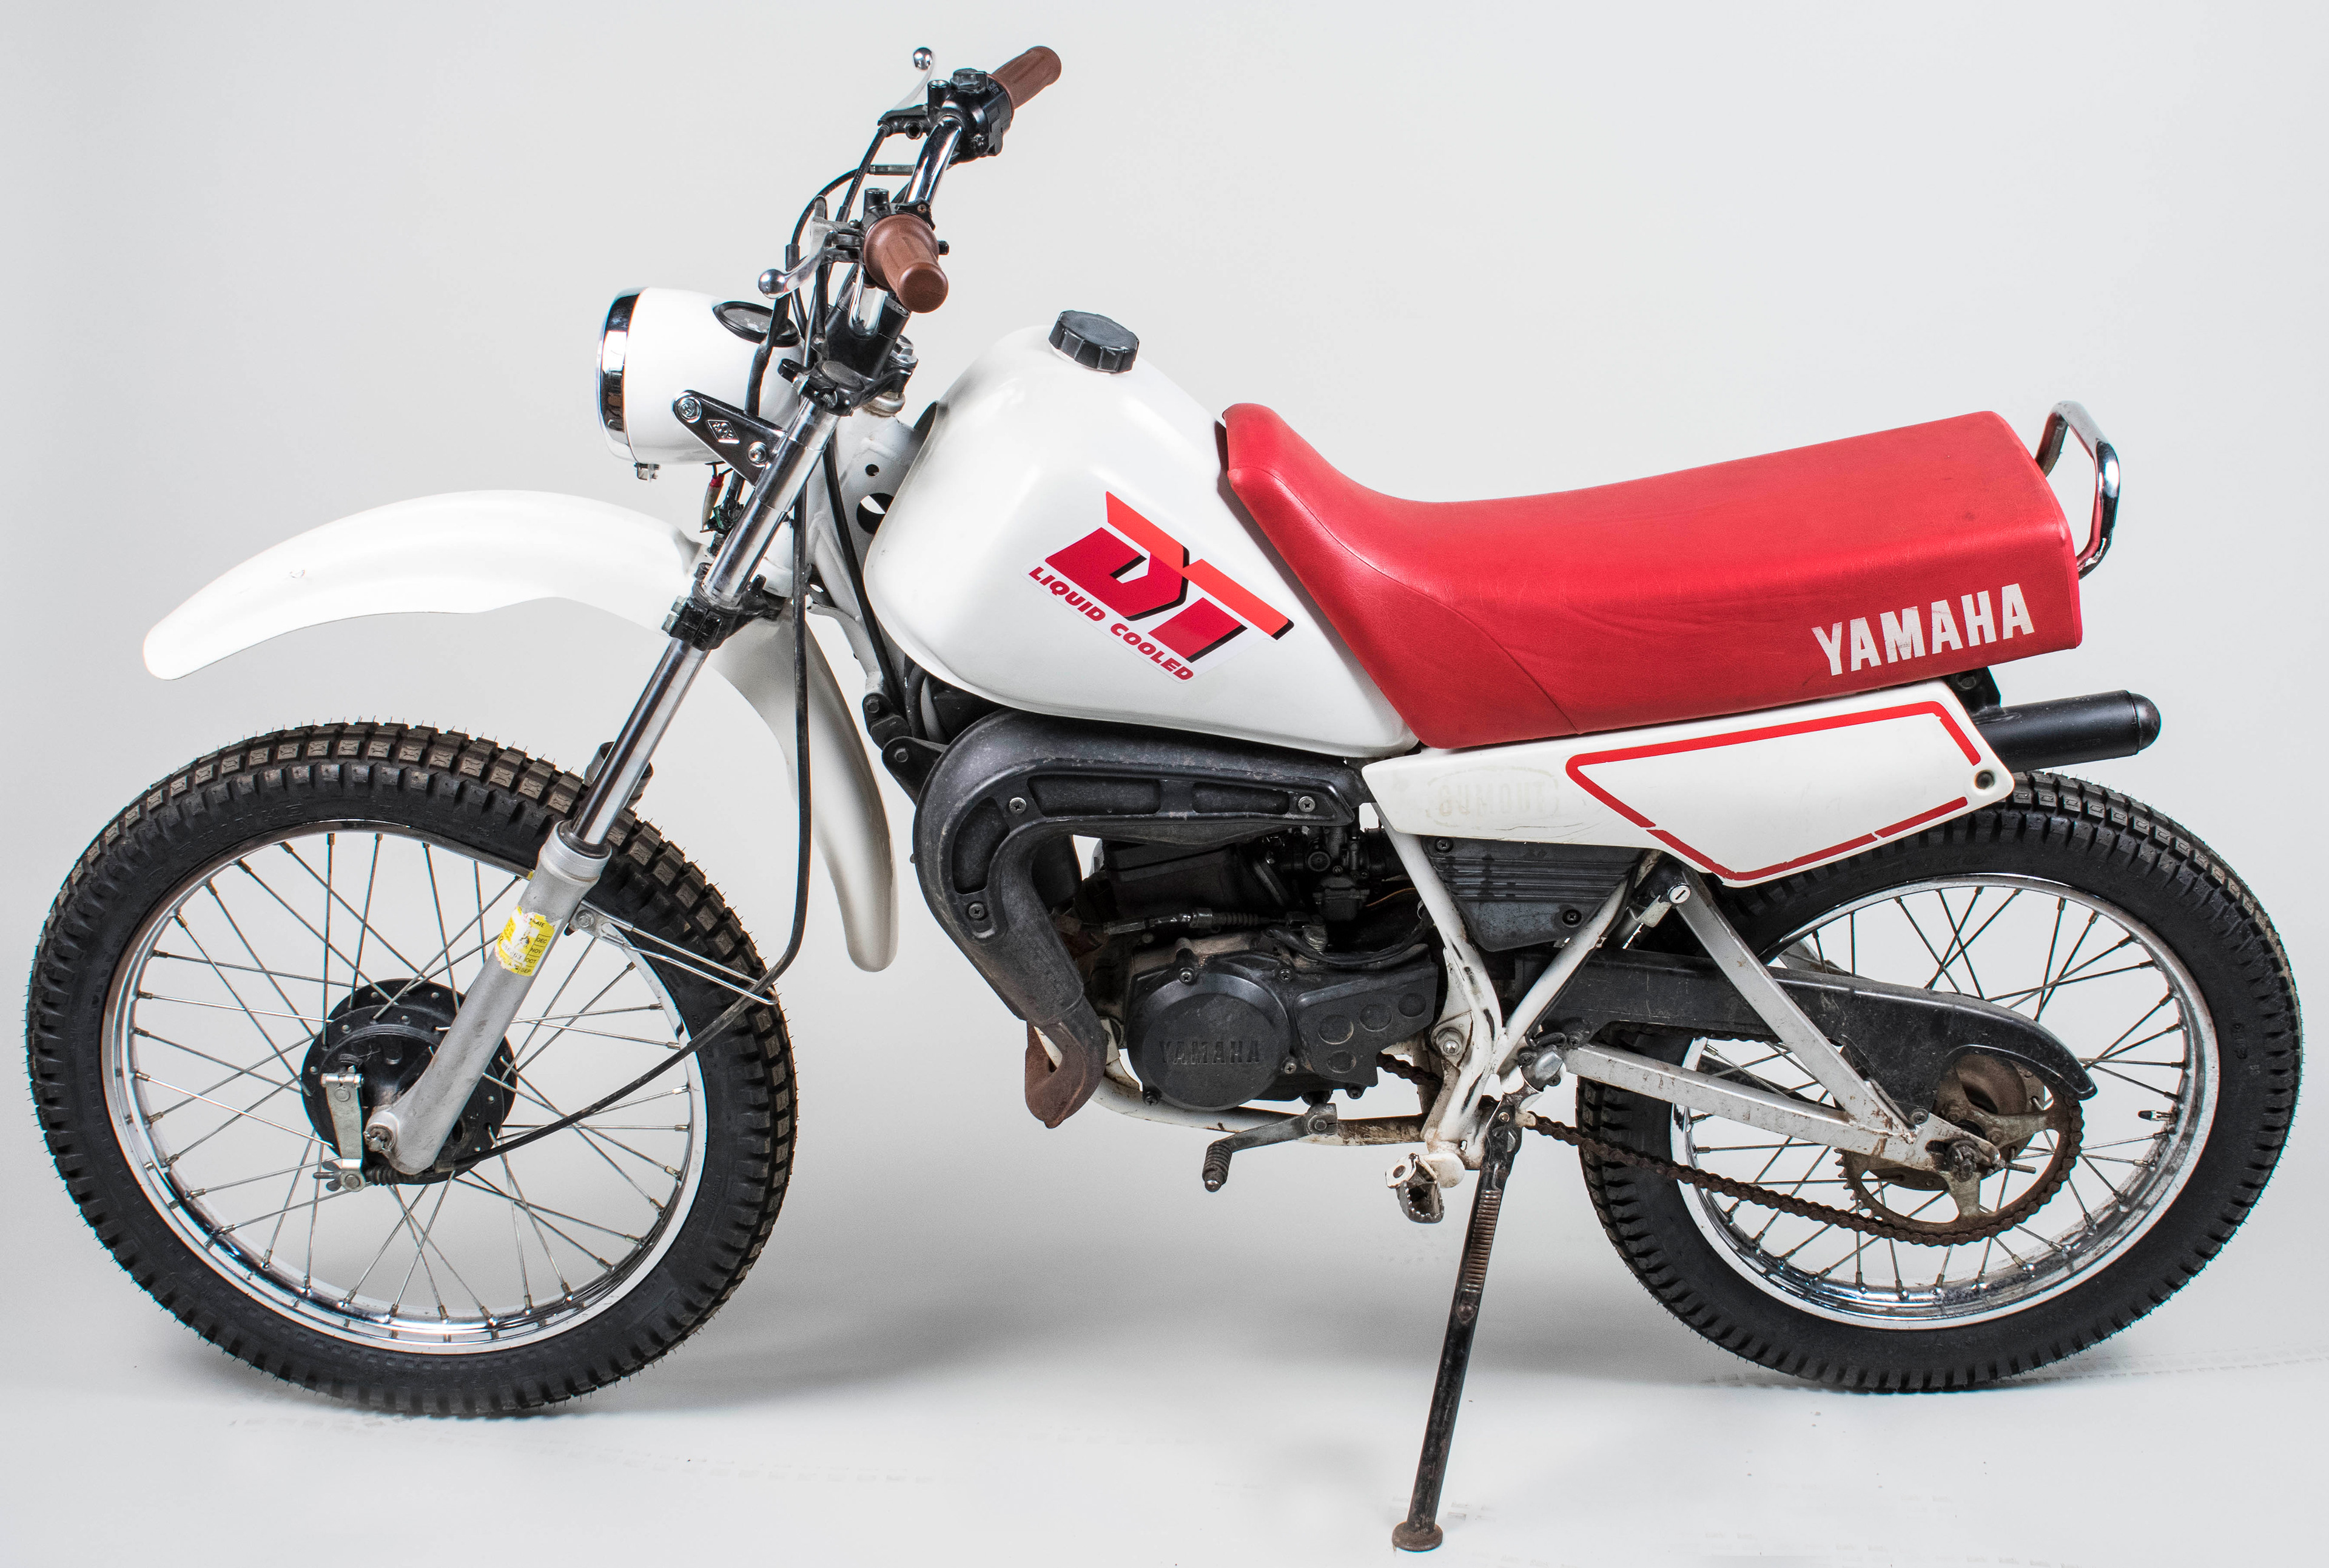 Dt 50 Lc Yamaha 125 Mx Wiring Diagram Dt125 A B Electrical Schematic 1974 1975 Here